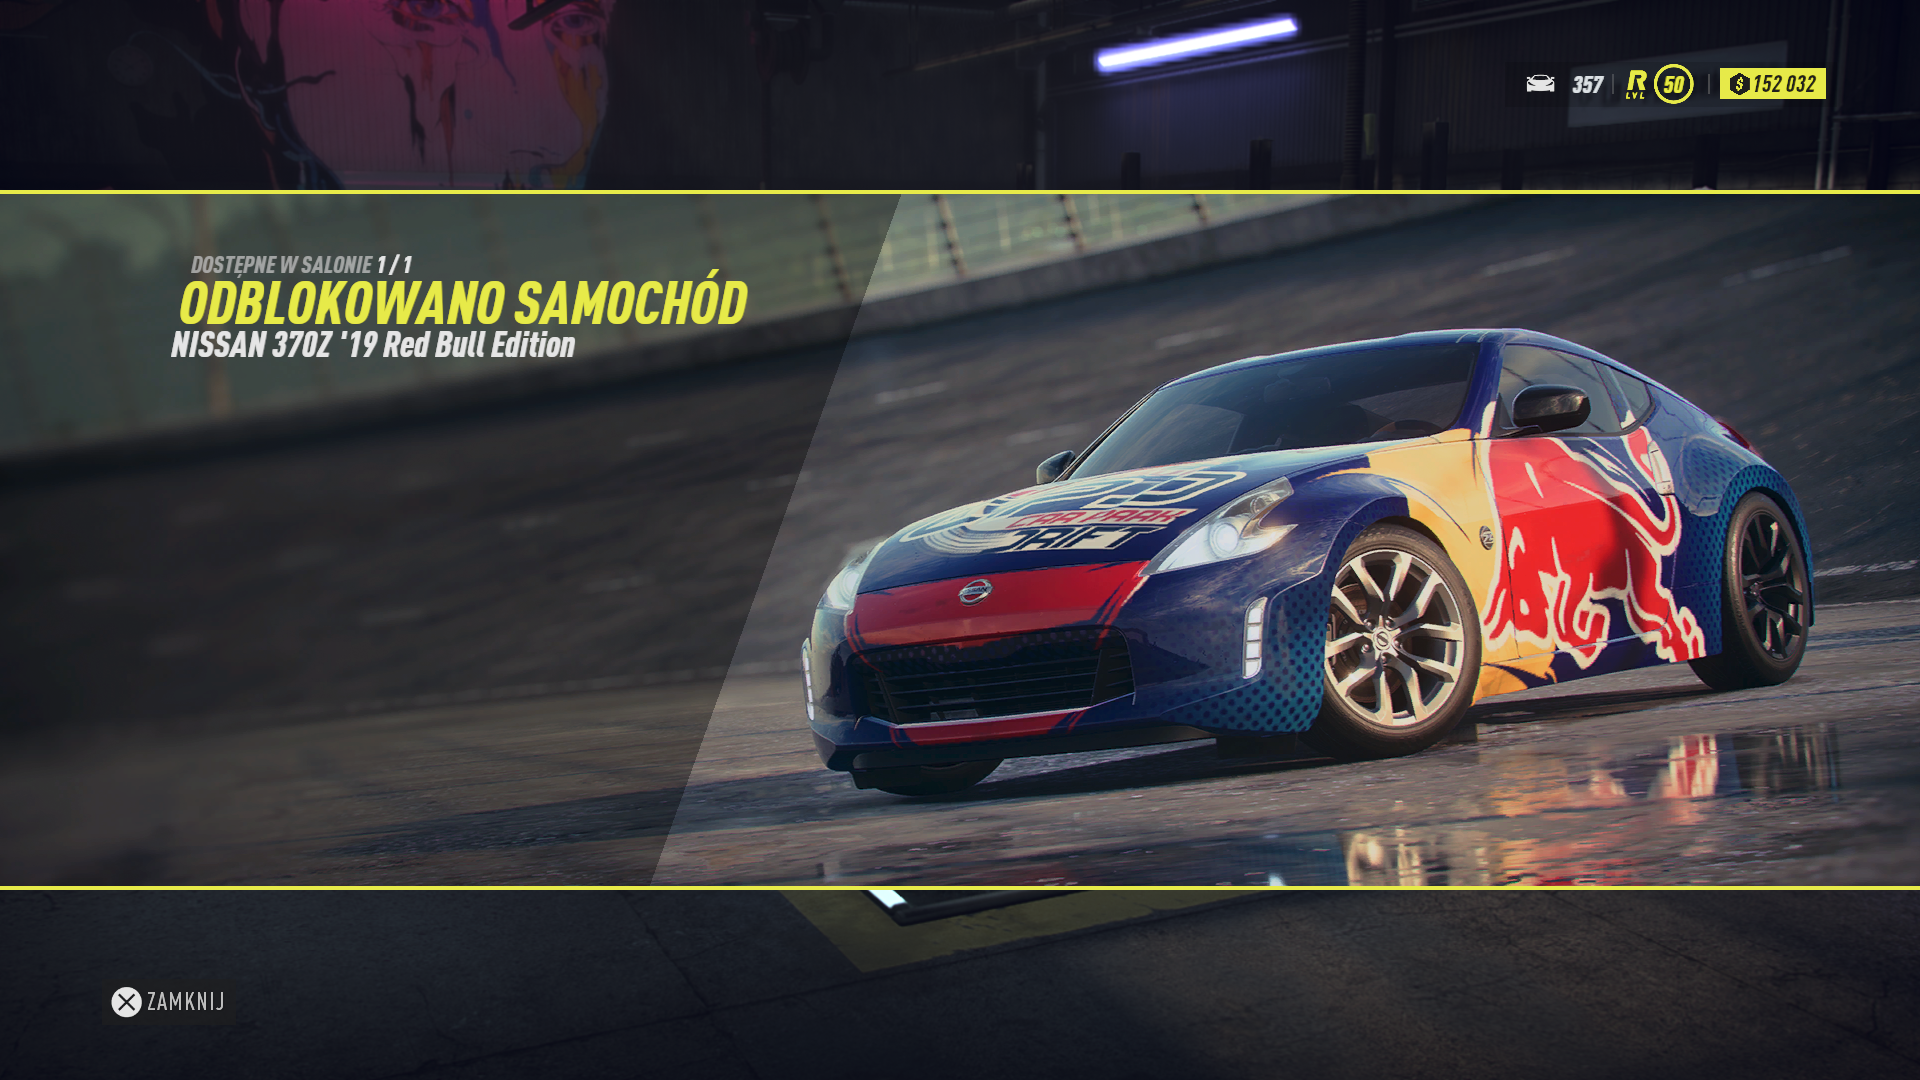 NFS - Need for Speed Heat - Nissan 370 Z Red Bull